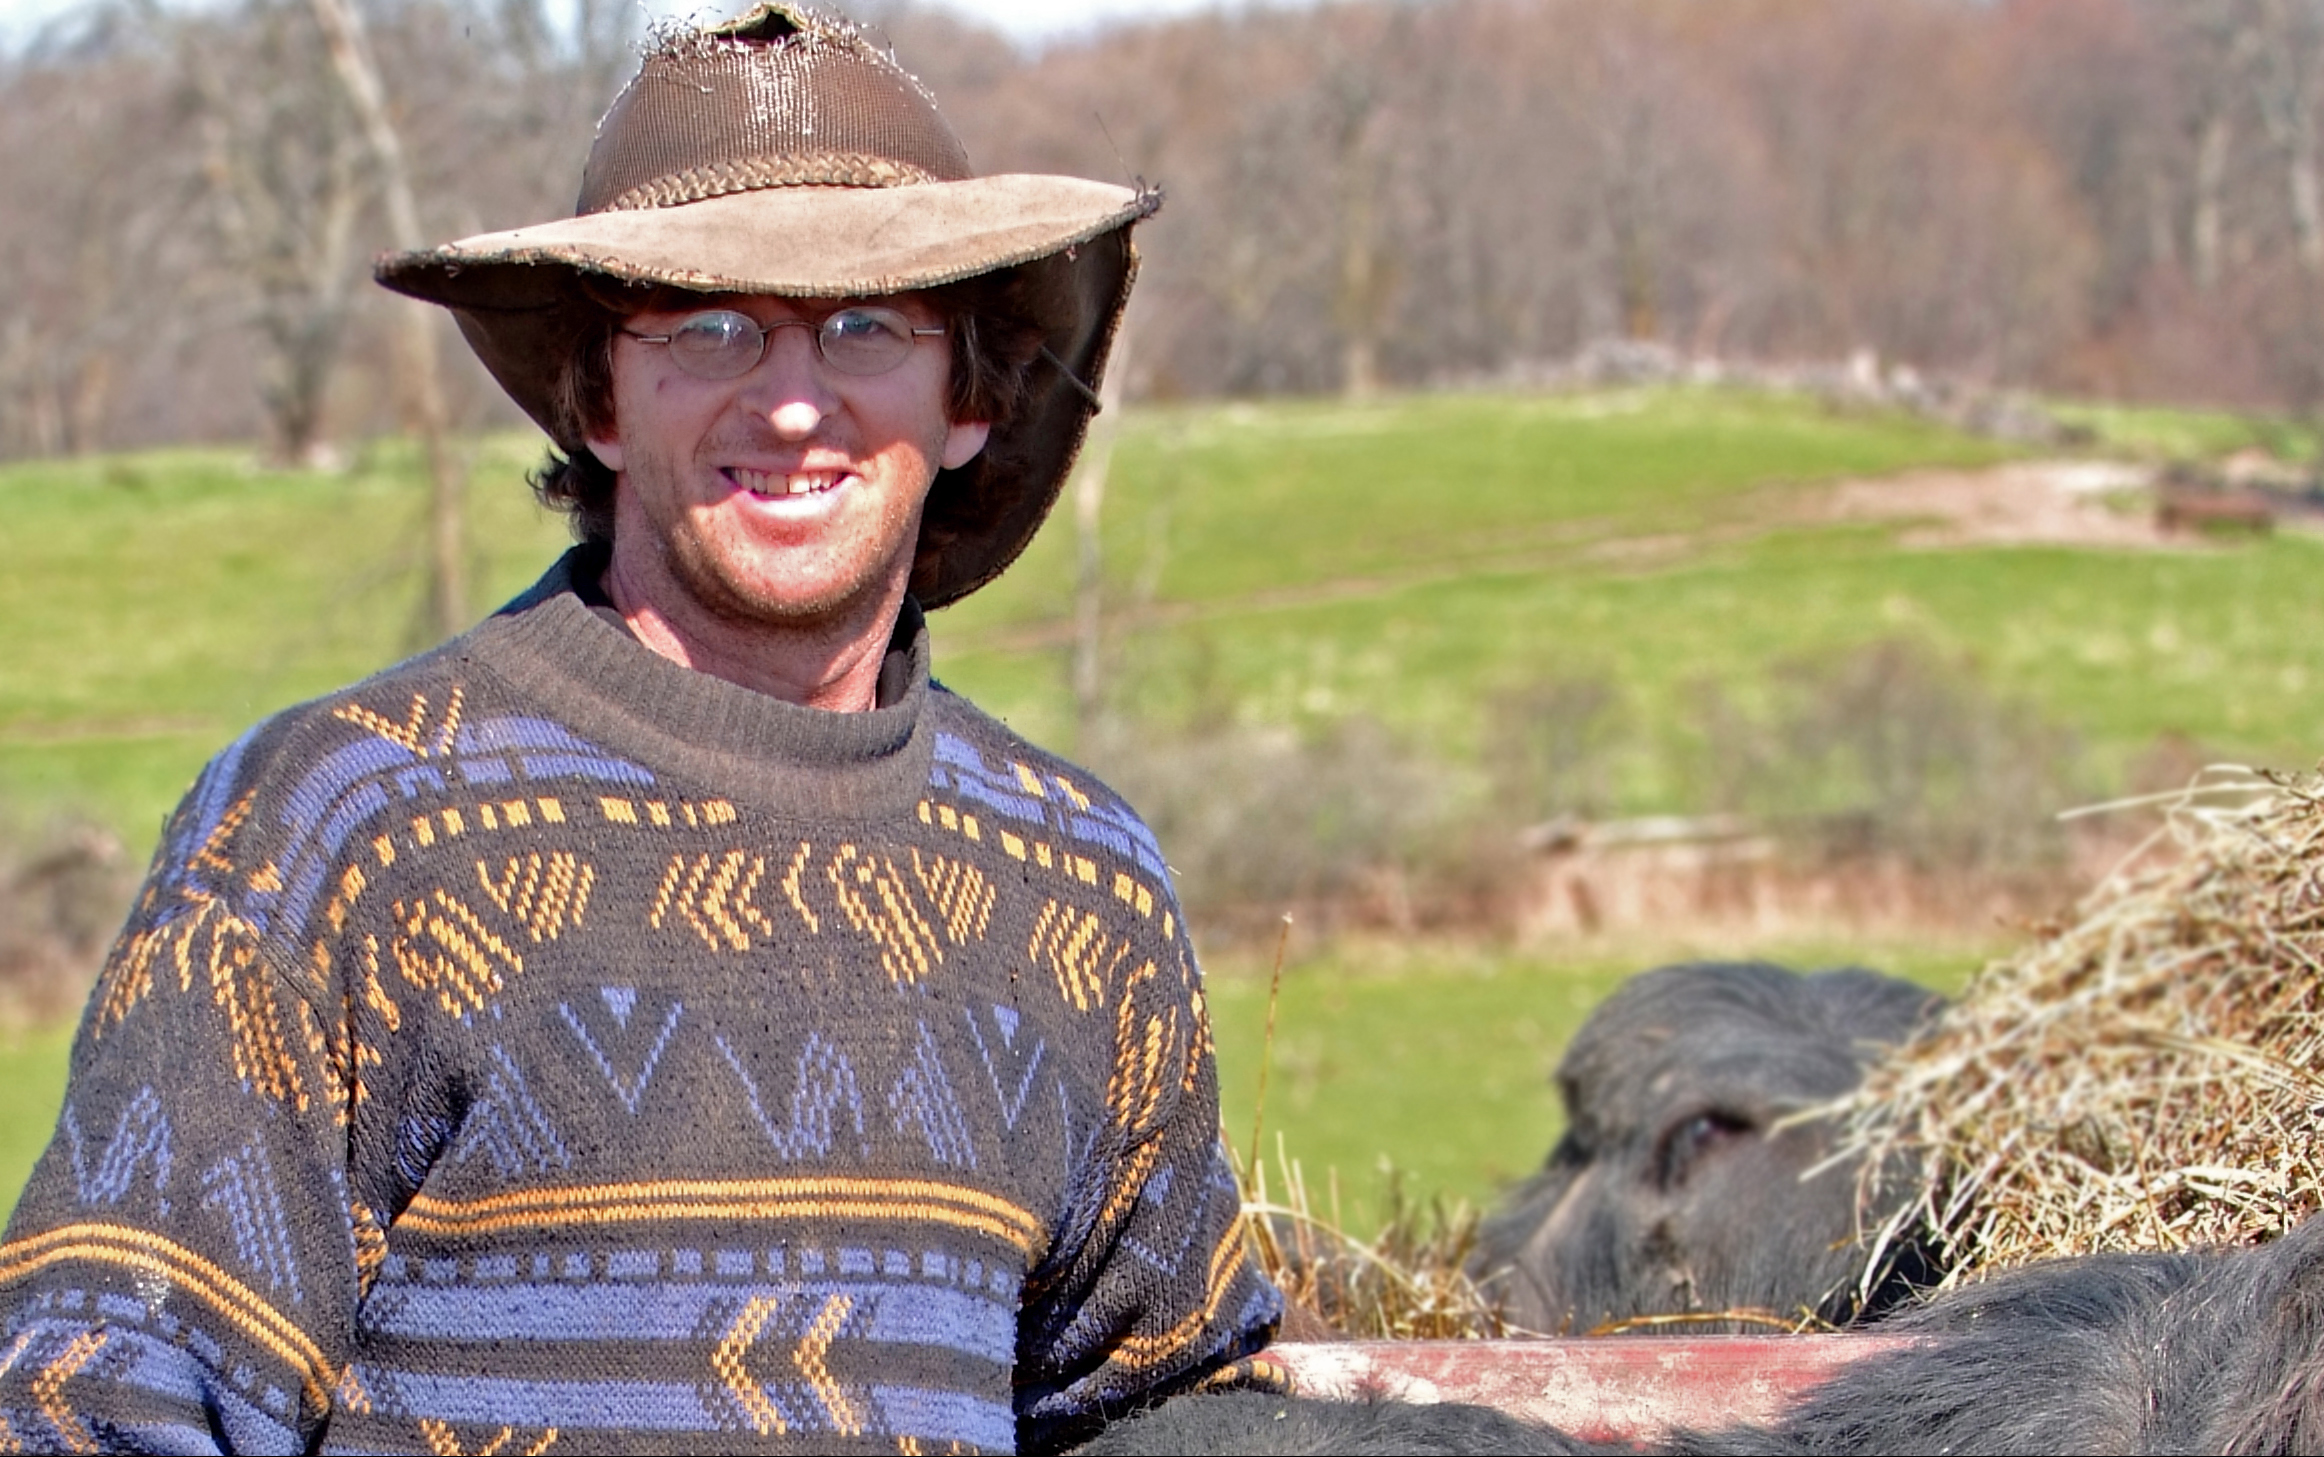 Stirling area farmer Martin Littkemann purchased his first herd of water buffalo in April 2008.